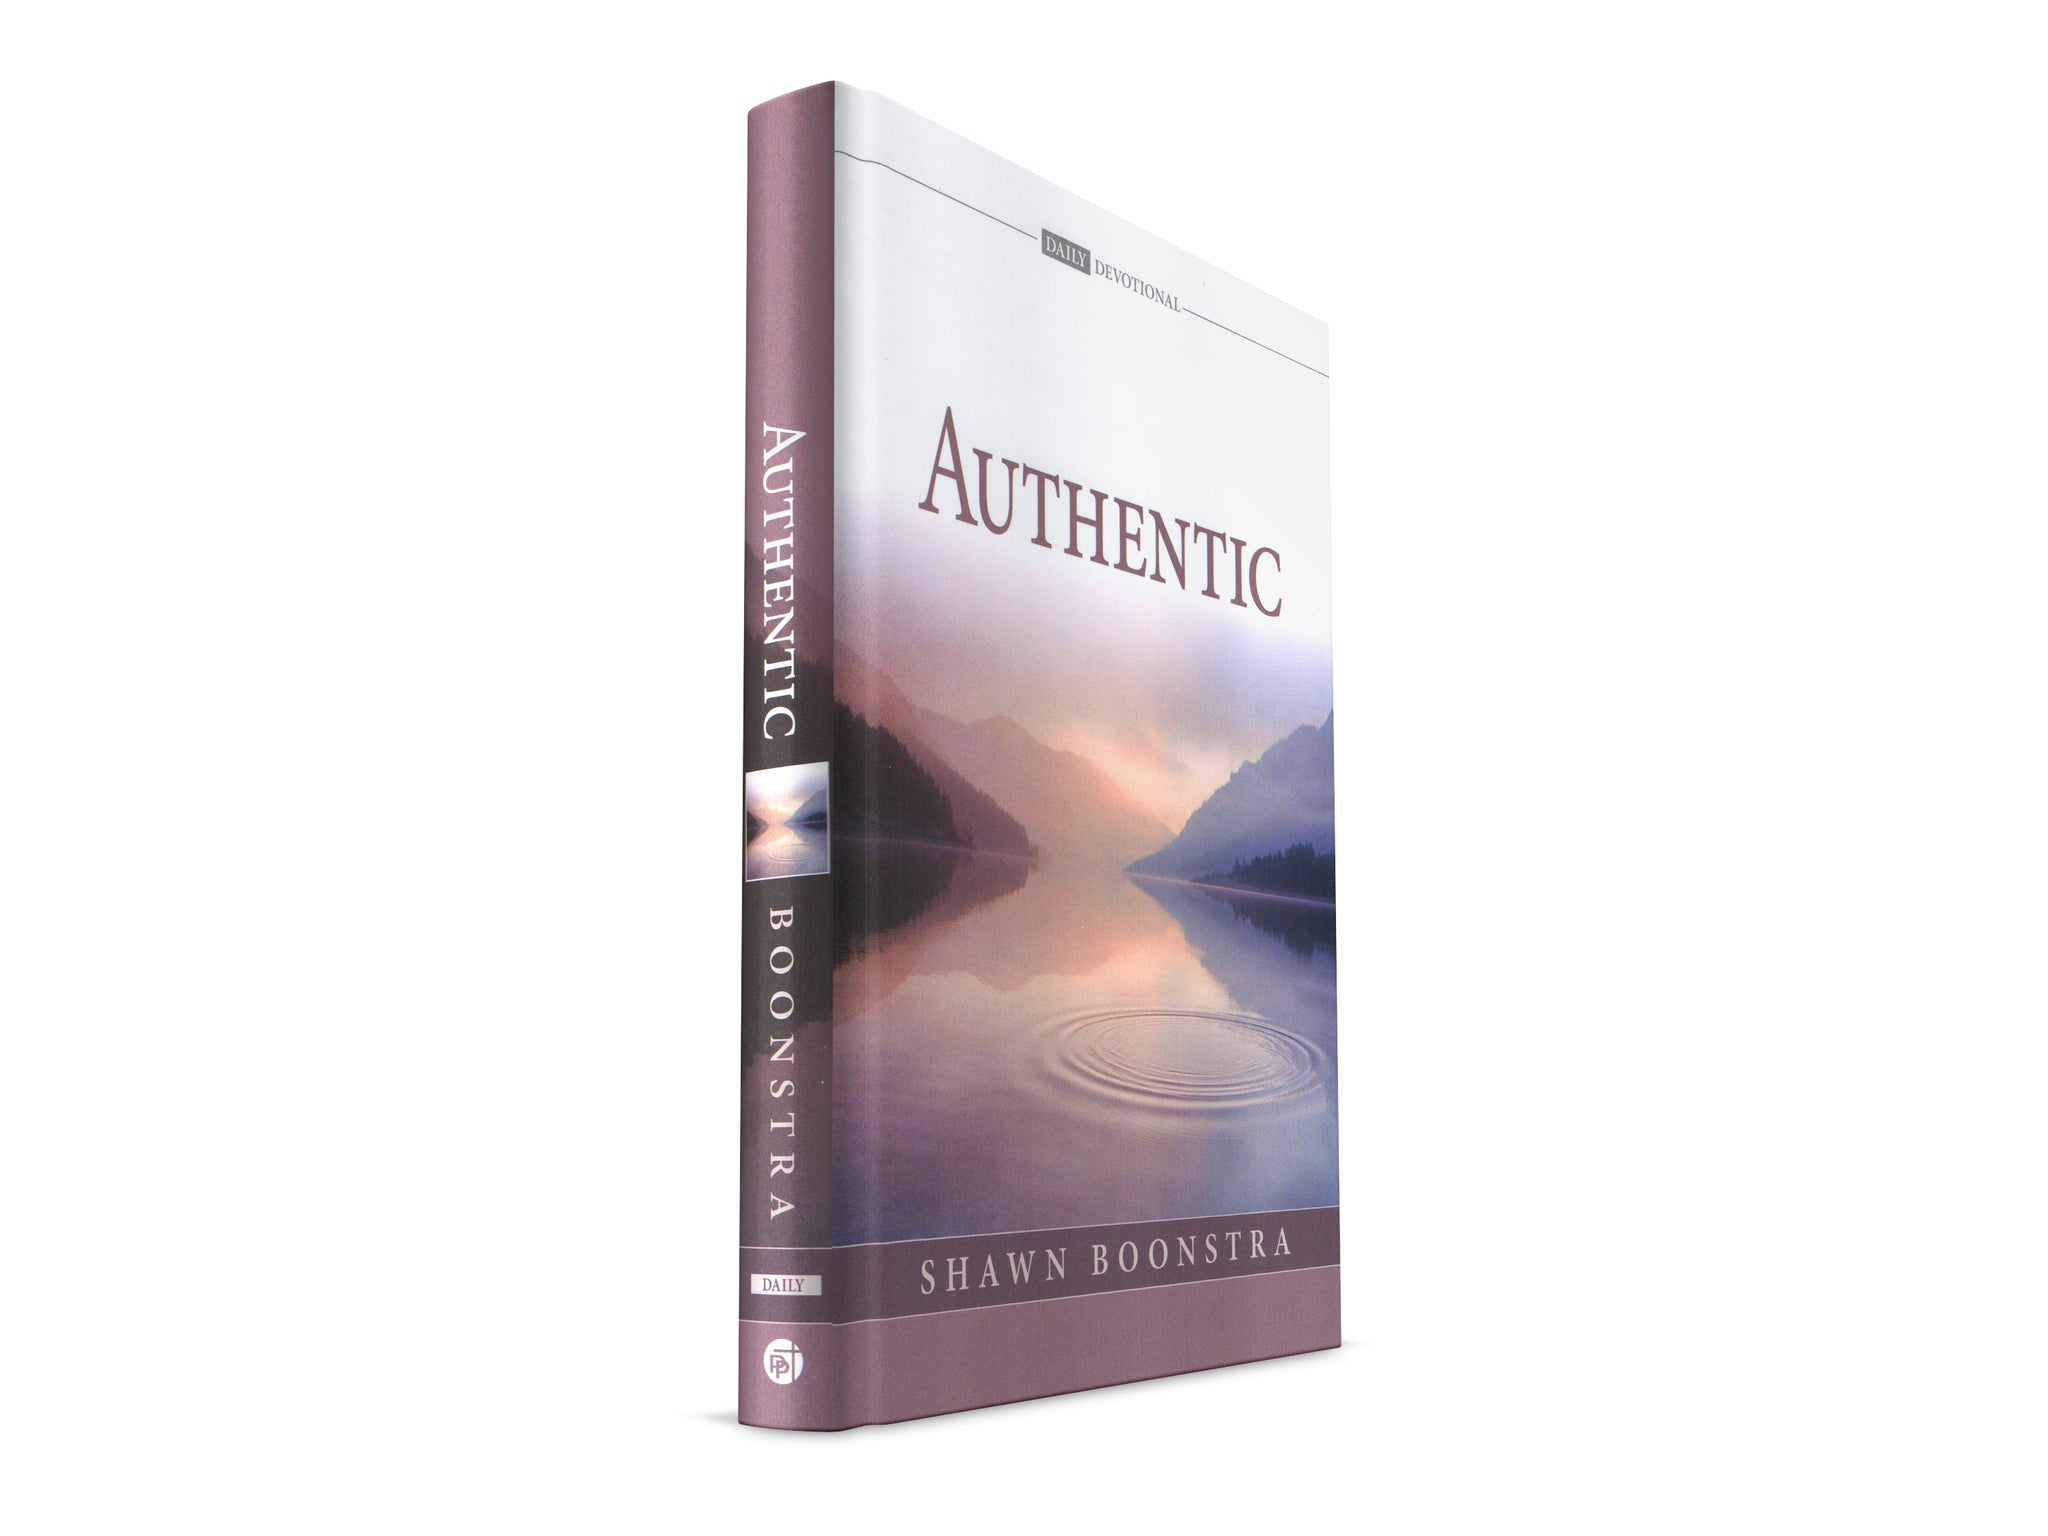 Authentic - 2019 Devotional Book by Shawn Boonstra